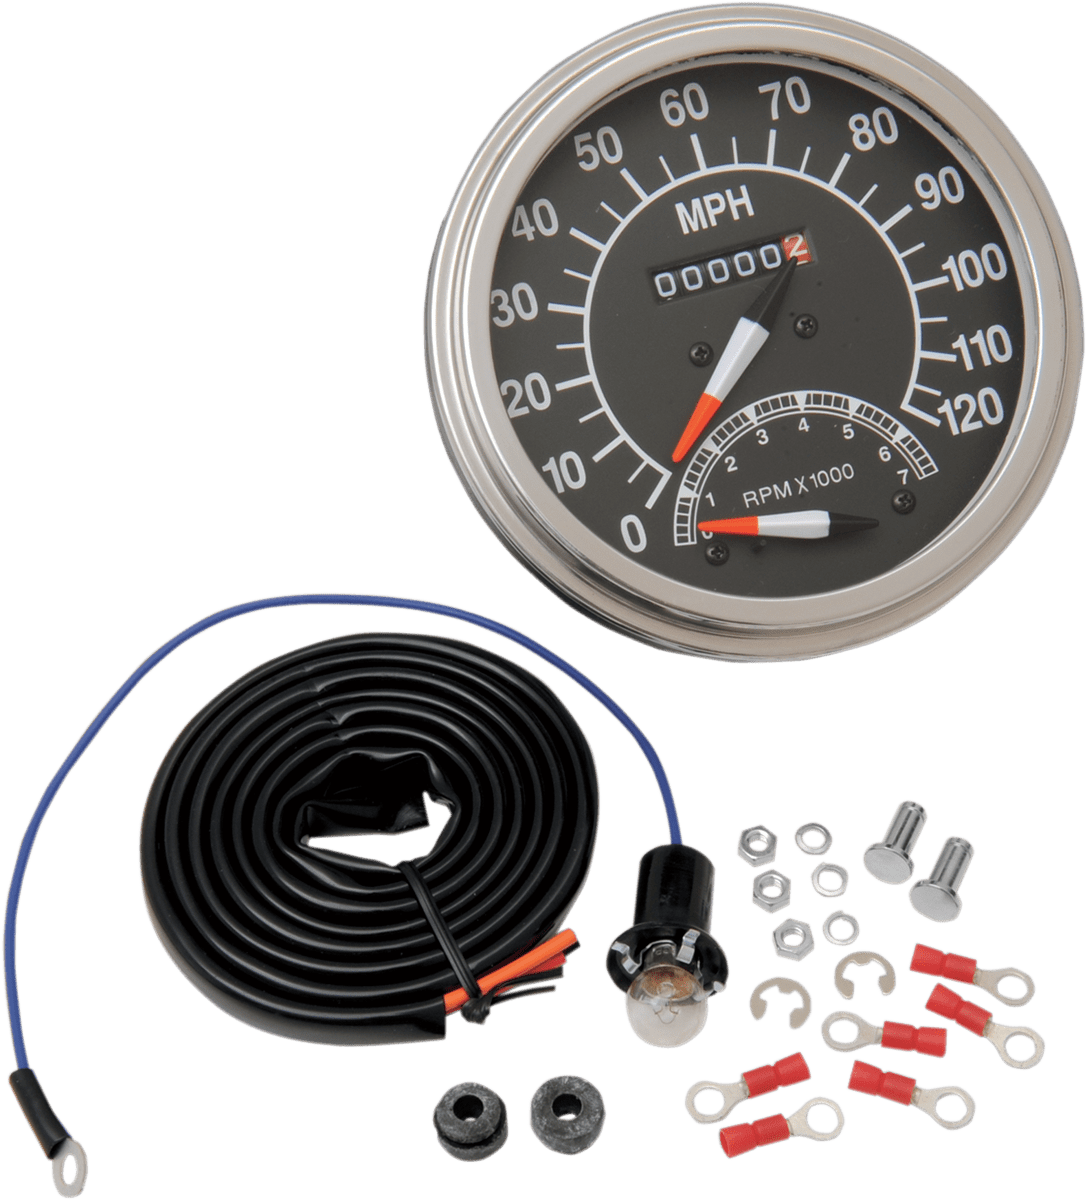 hight resolution of mopar tachometer wiring diagram explained wiring diagrams chevy truck tachometer mopar wiring a tachometer